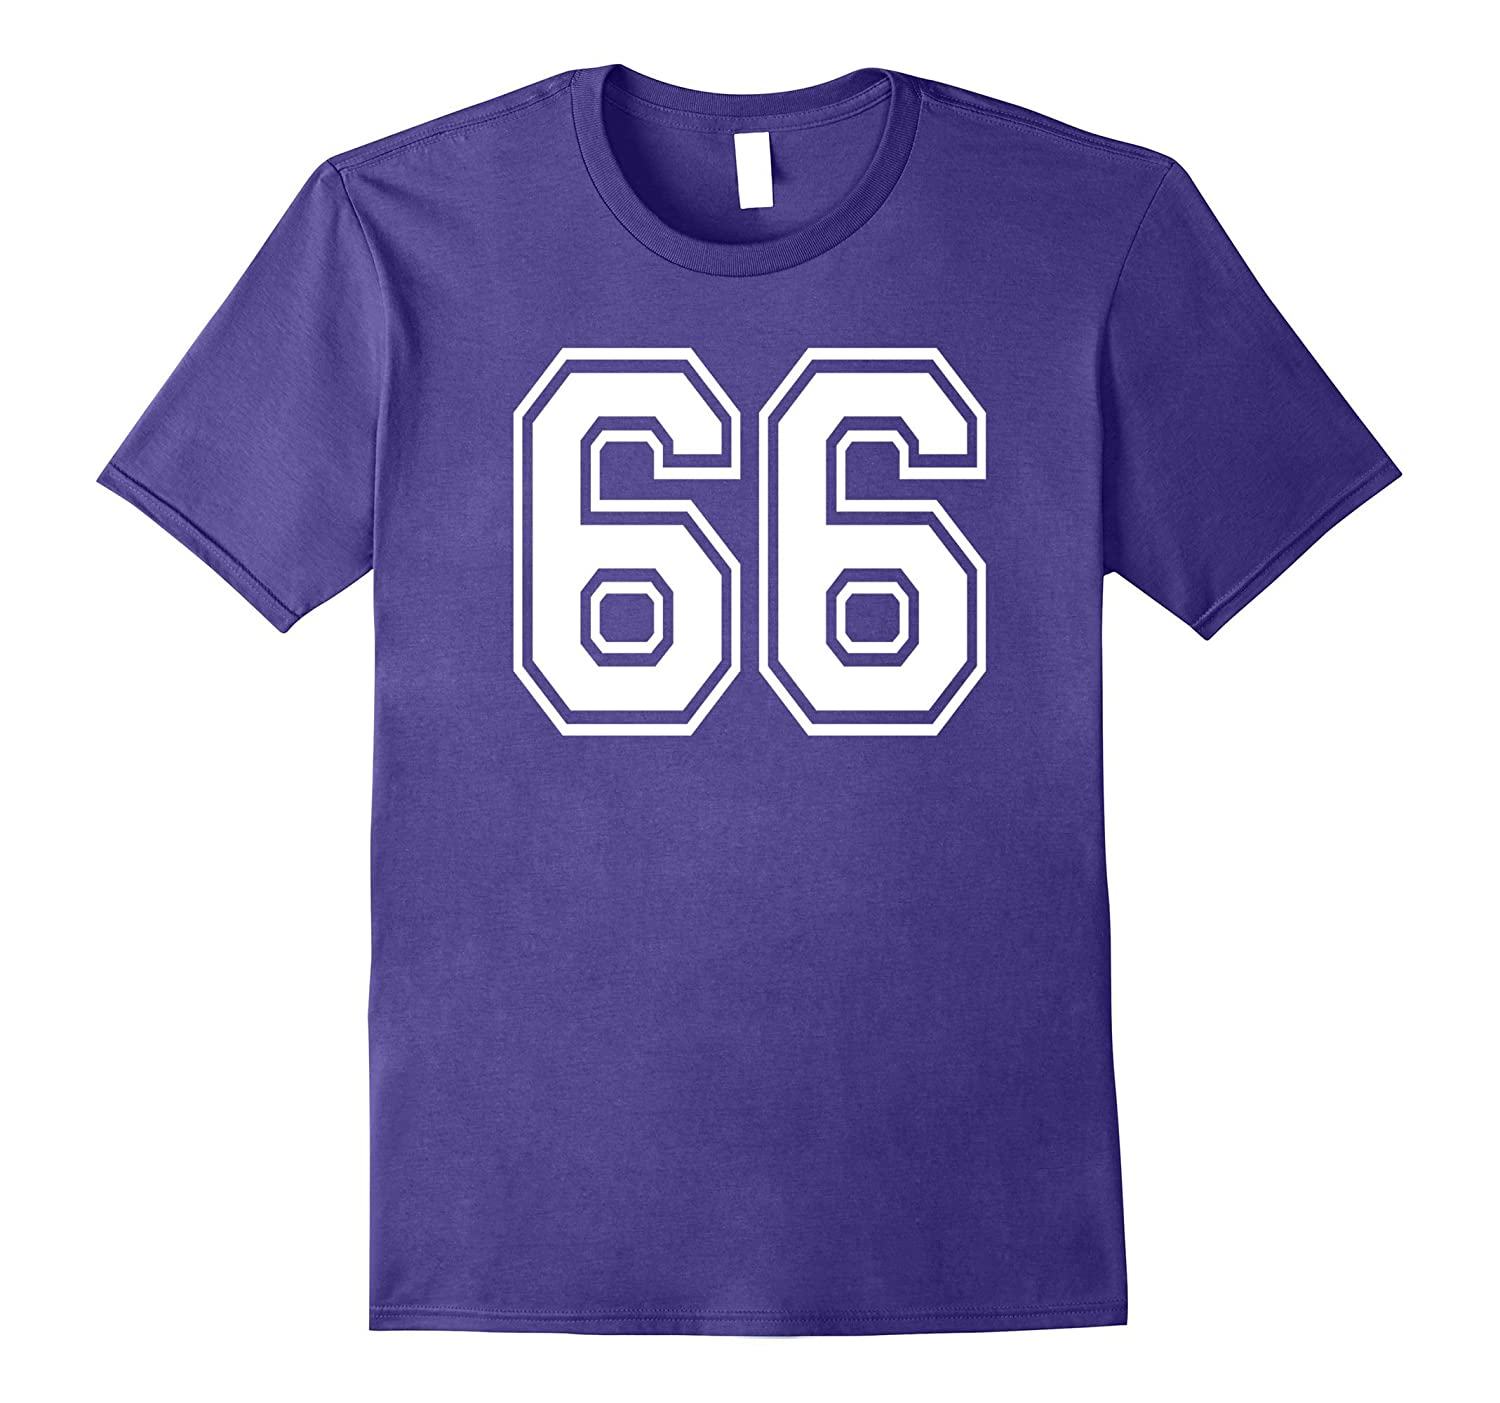 #66 Numbered College Sports Team T-Shirts front and back-Rose